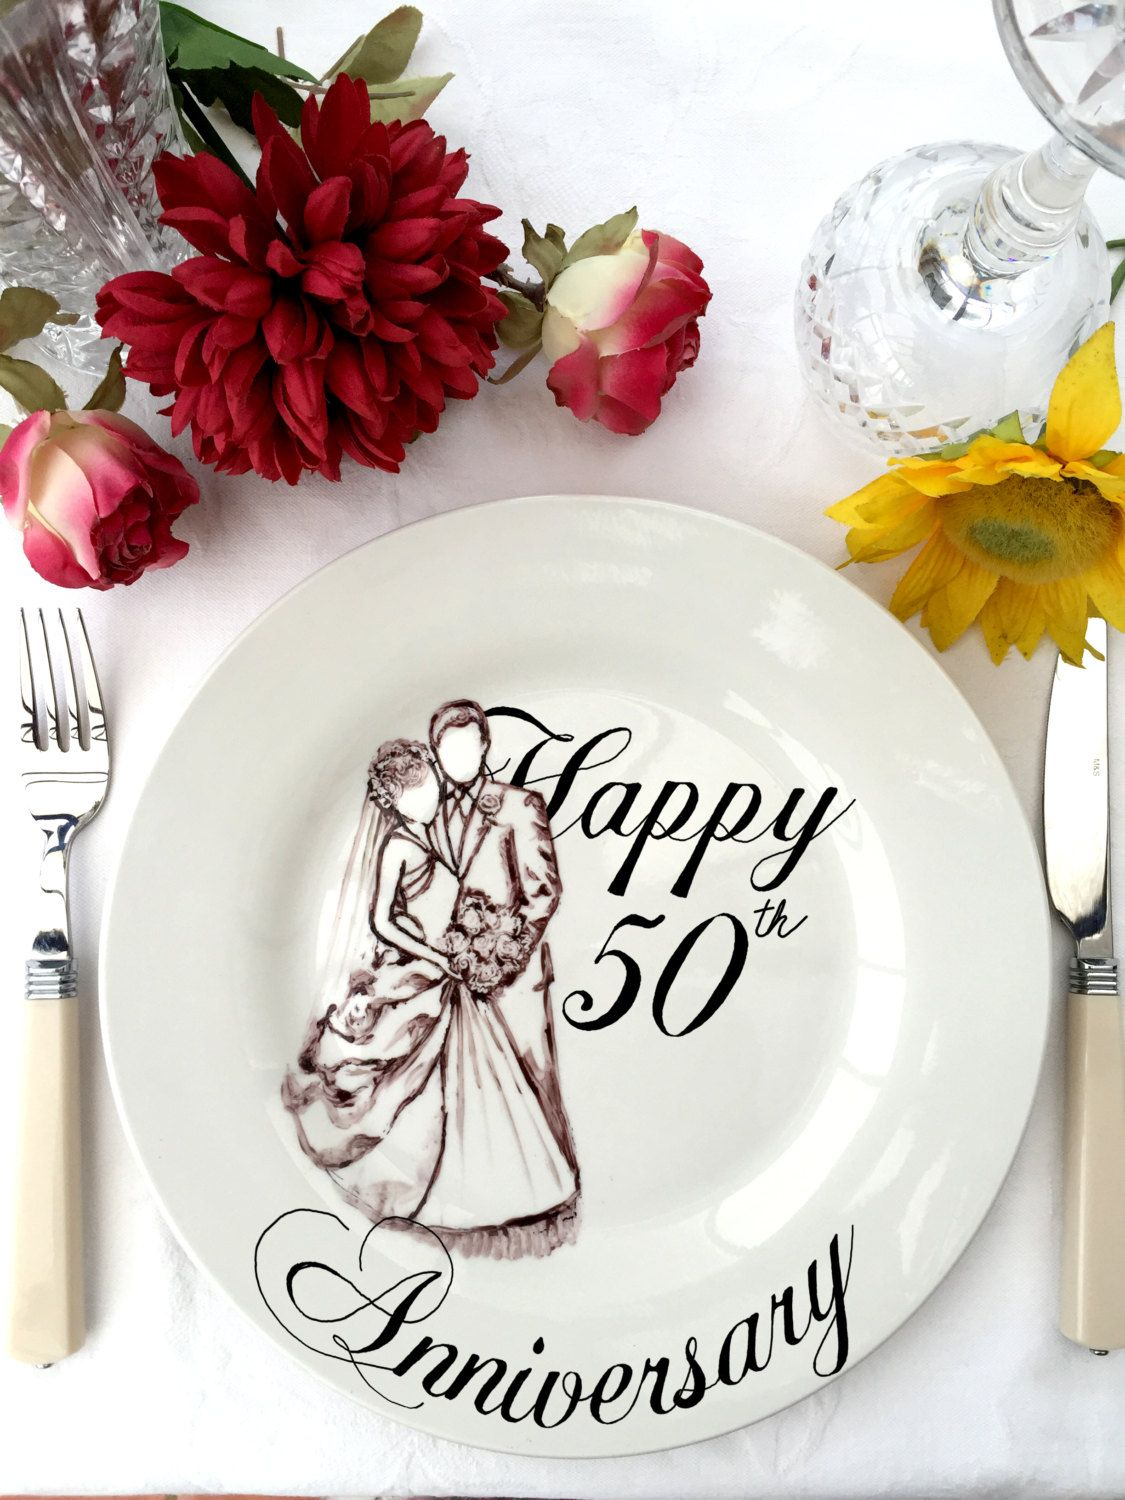 personalized wedding anniversary gift couples plate ceramic plate